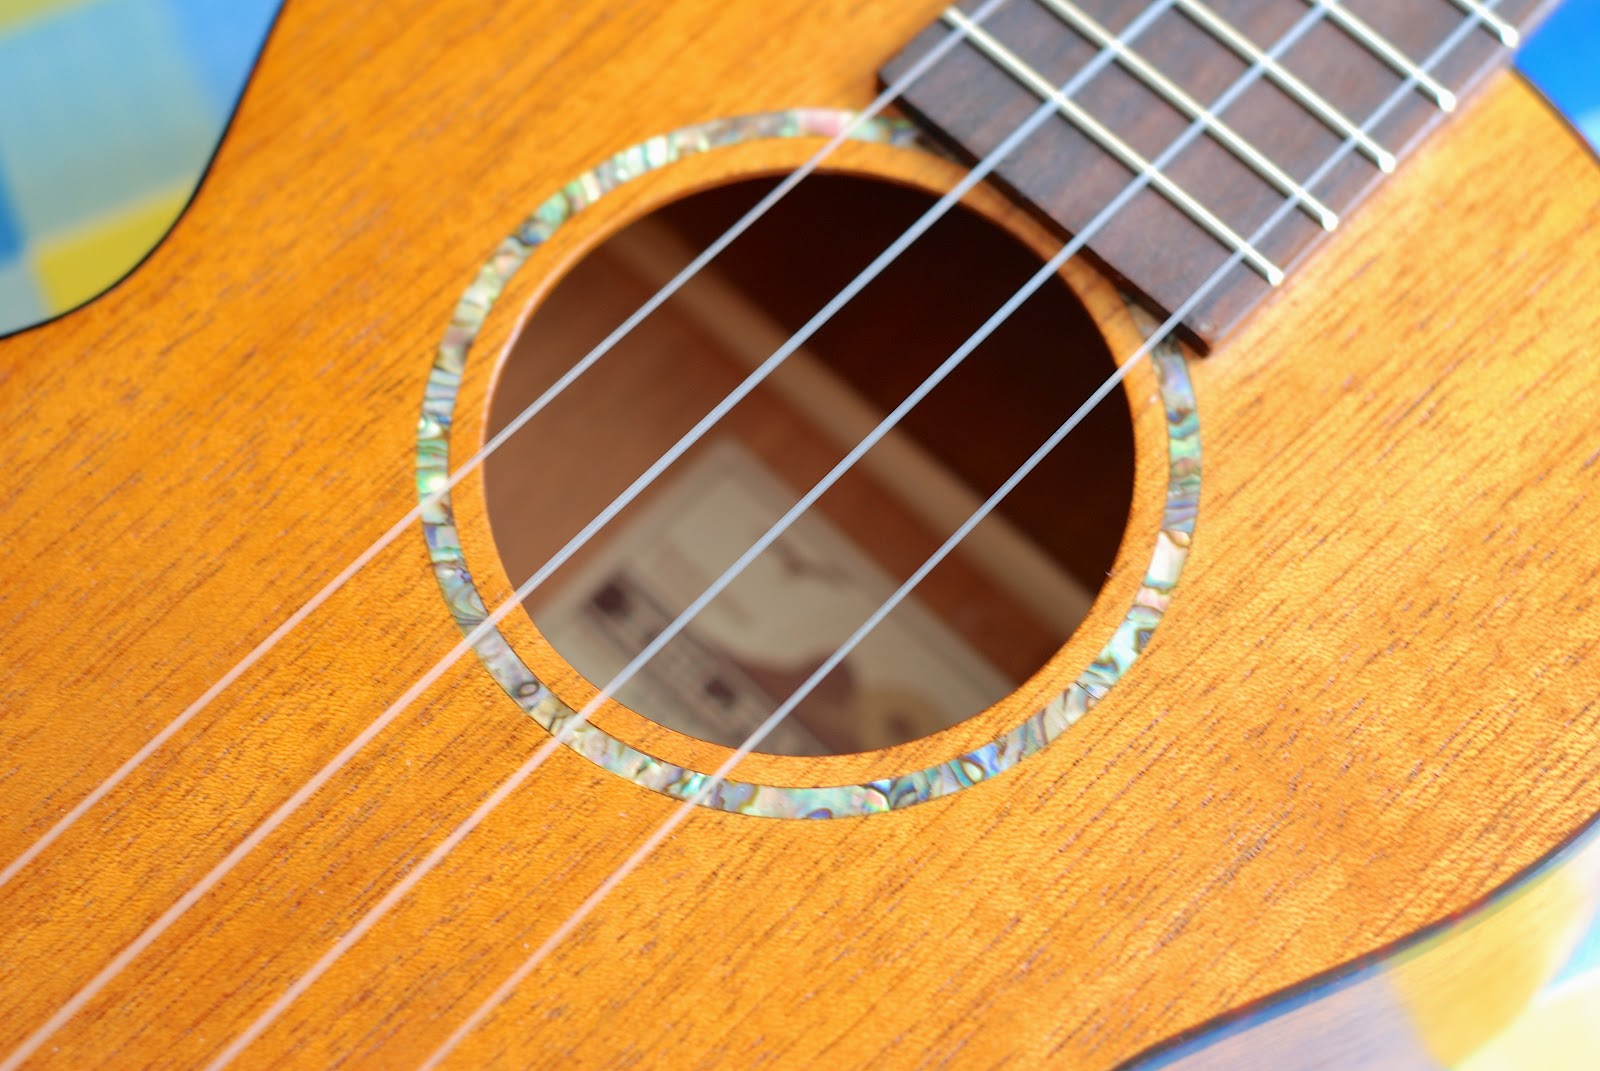 Islander mst 4 tenor ukulele review for Decoration ukulele